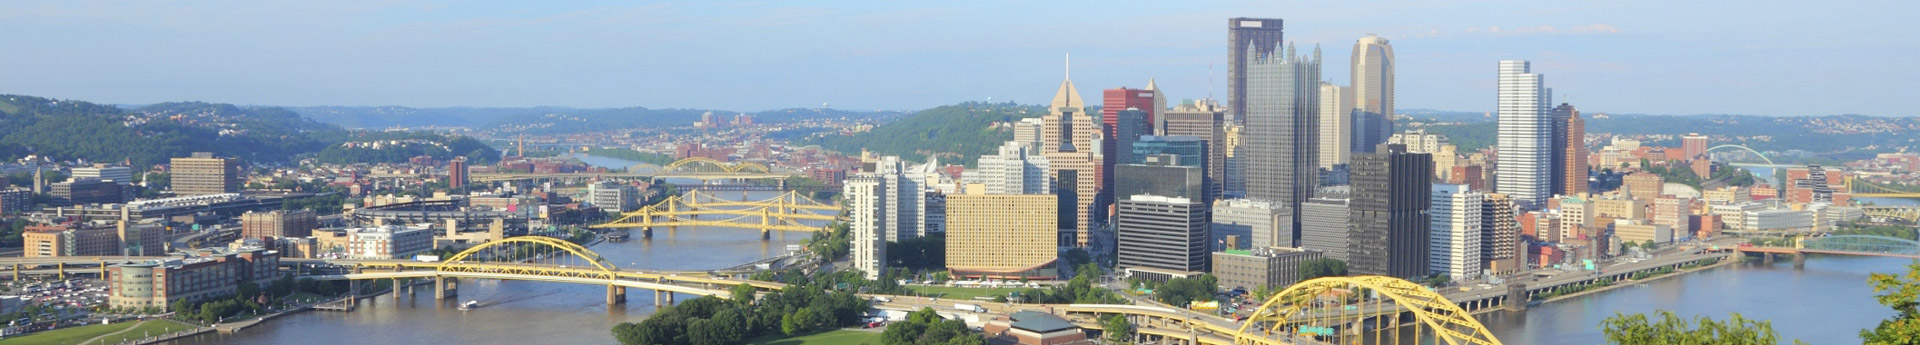 System One Pittsburgh, Pittsburgh jobs, Pittsburgh staffing, Pittsburgh energy jobs, Pittsburgh engineering jobs, Pittsburgh Information Technology jobs, Pittsburgh professional jobs, Pittsburgh commercial jobs, staffing agency pittsburgh, pittsburgh staffing agency,